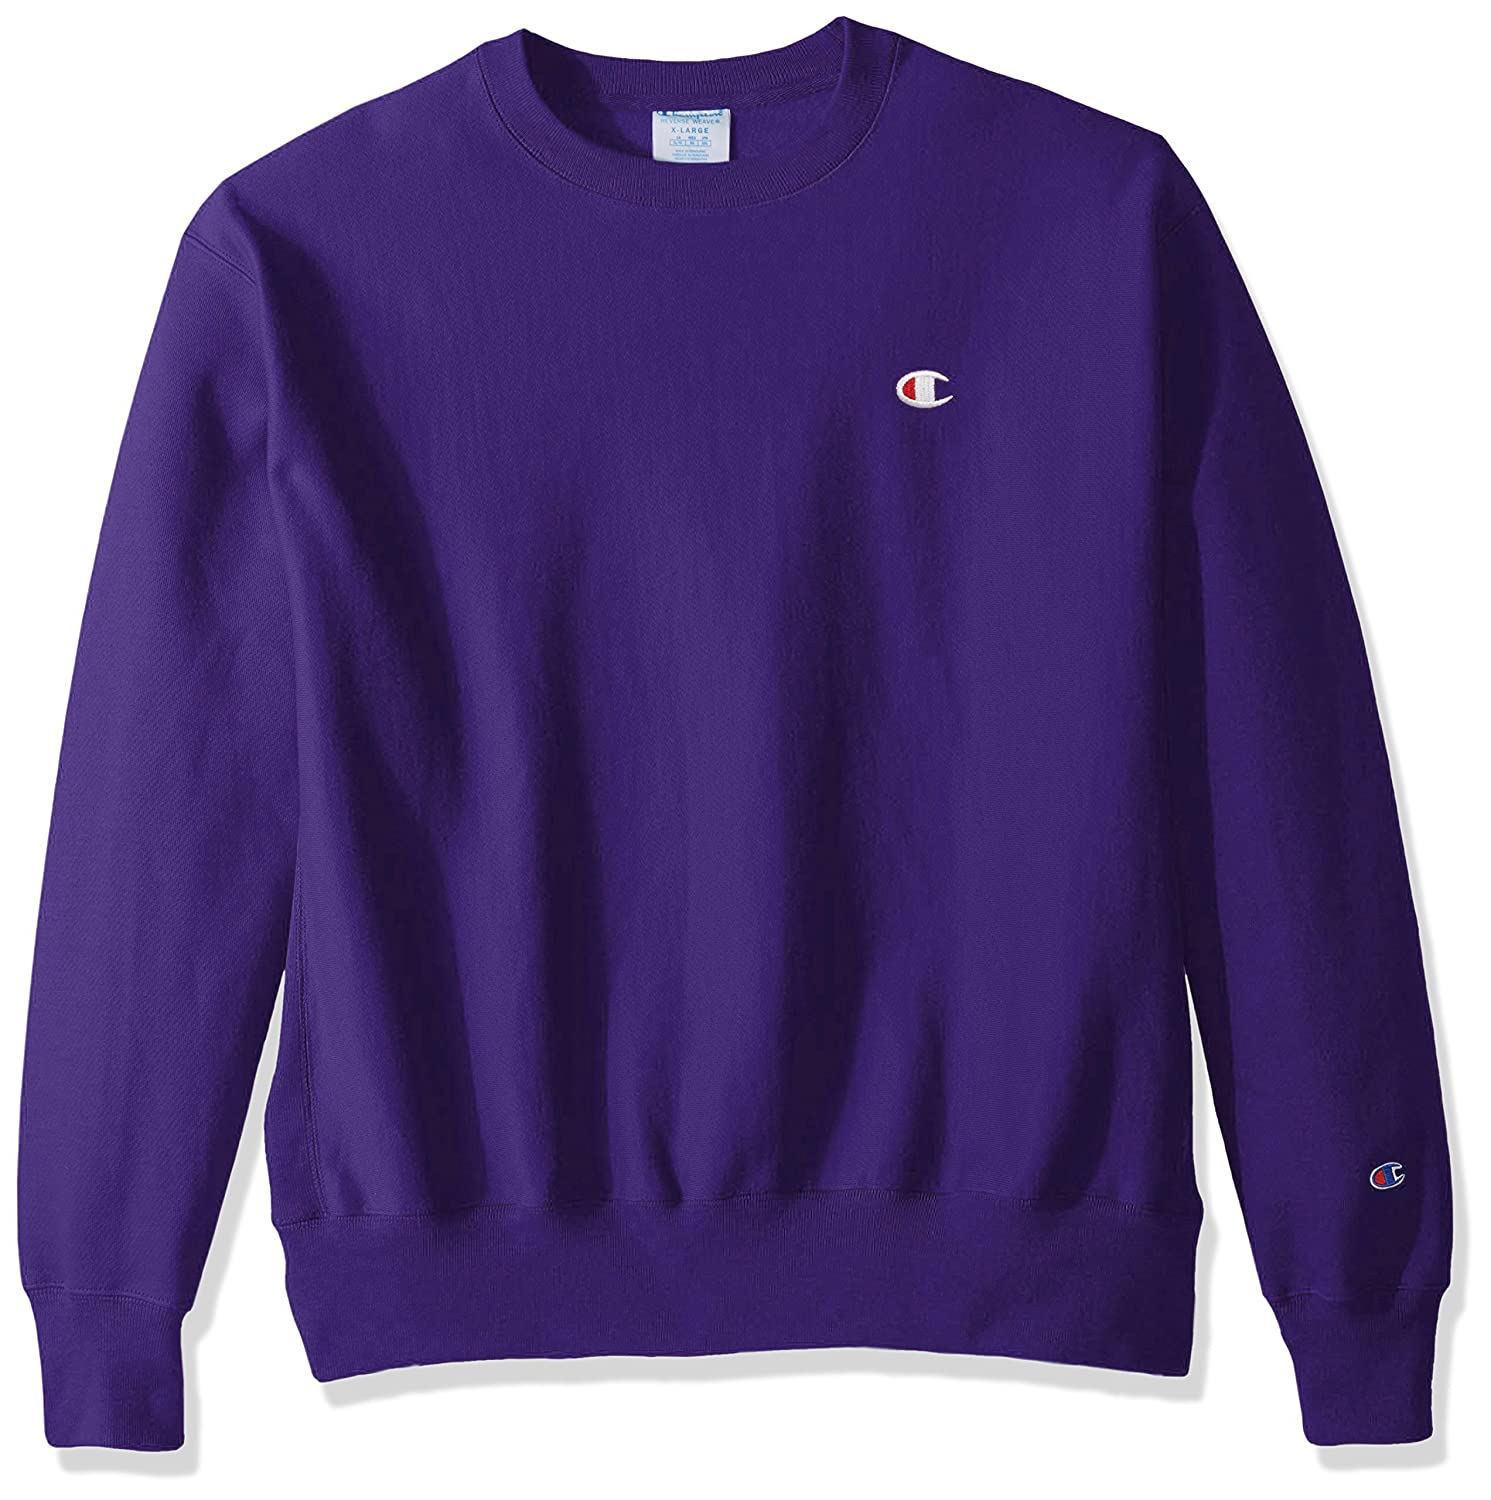 201b34a2 Amazon.com: Champion LIFE Men's Reverse Weave Sweatshirt,Purple/Left Chest